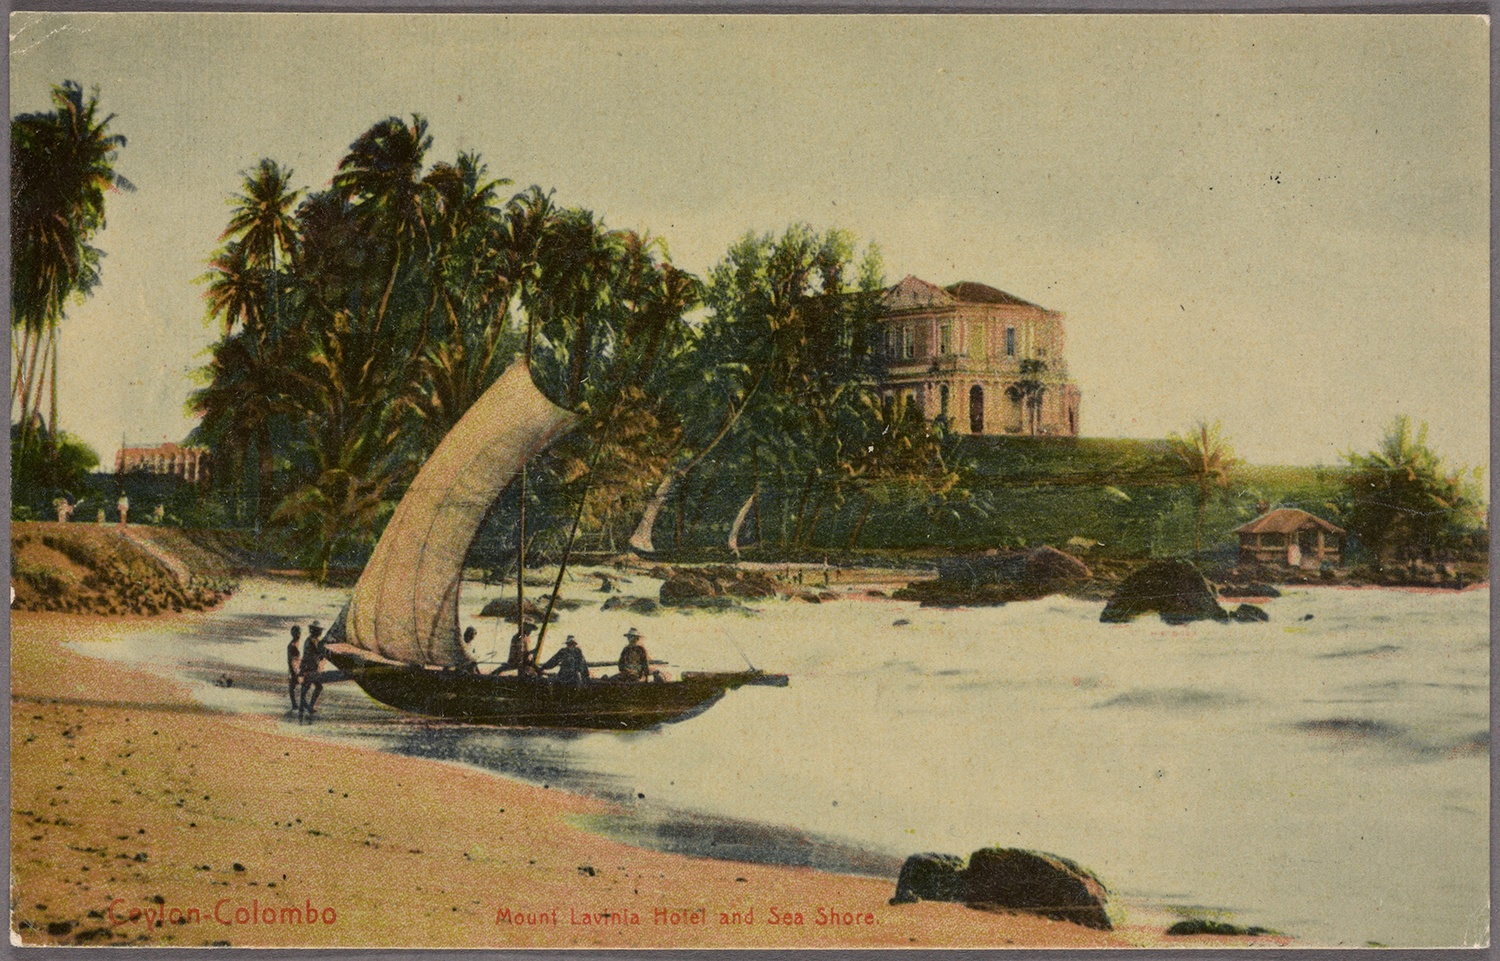 Mount Lavinia Hotel, several miles south of the port of Colombo, c. 1910. Nellie Bly came ashore in a boat like the one in the foreground. Courtesy of the New York Public Library.